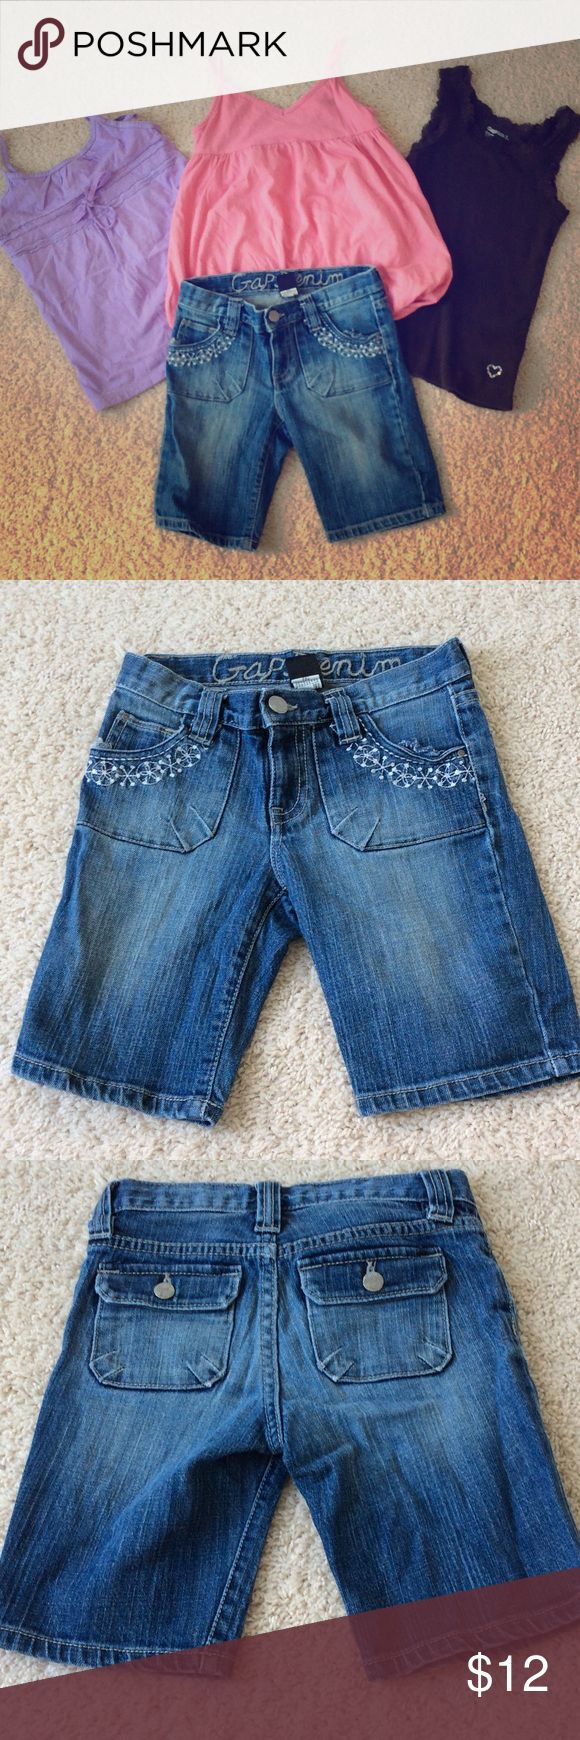 4 pieces of Gap clothing size 6-7 4 pieces of Gap clothing size 6-7. Blue denim embroidered jeans are size 7 regular. Tops are all size 6-7 GAP Shirts & Tops